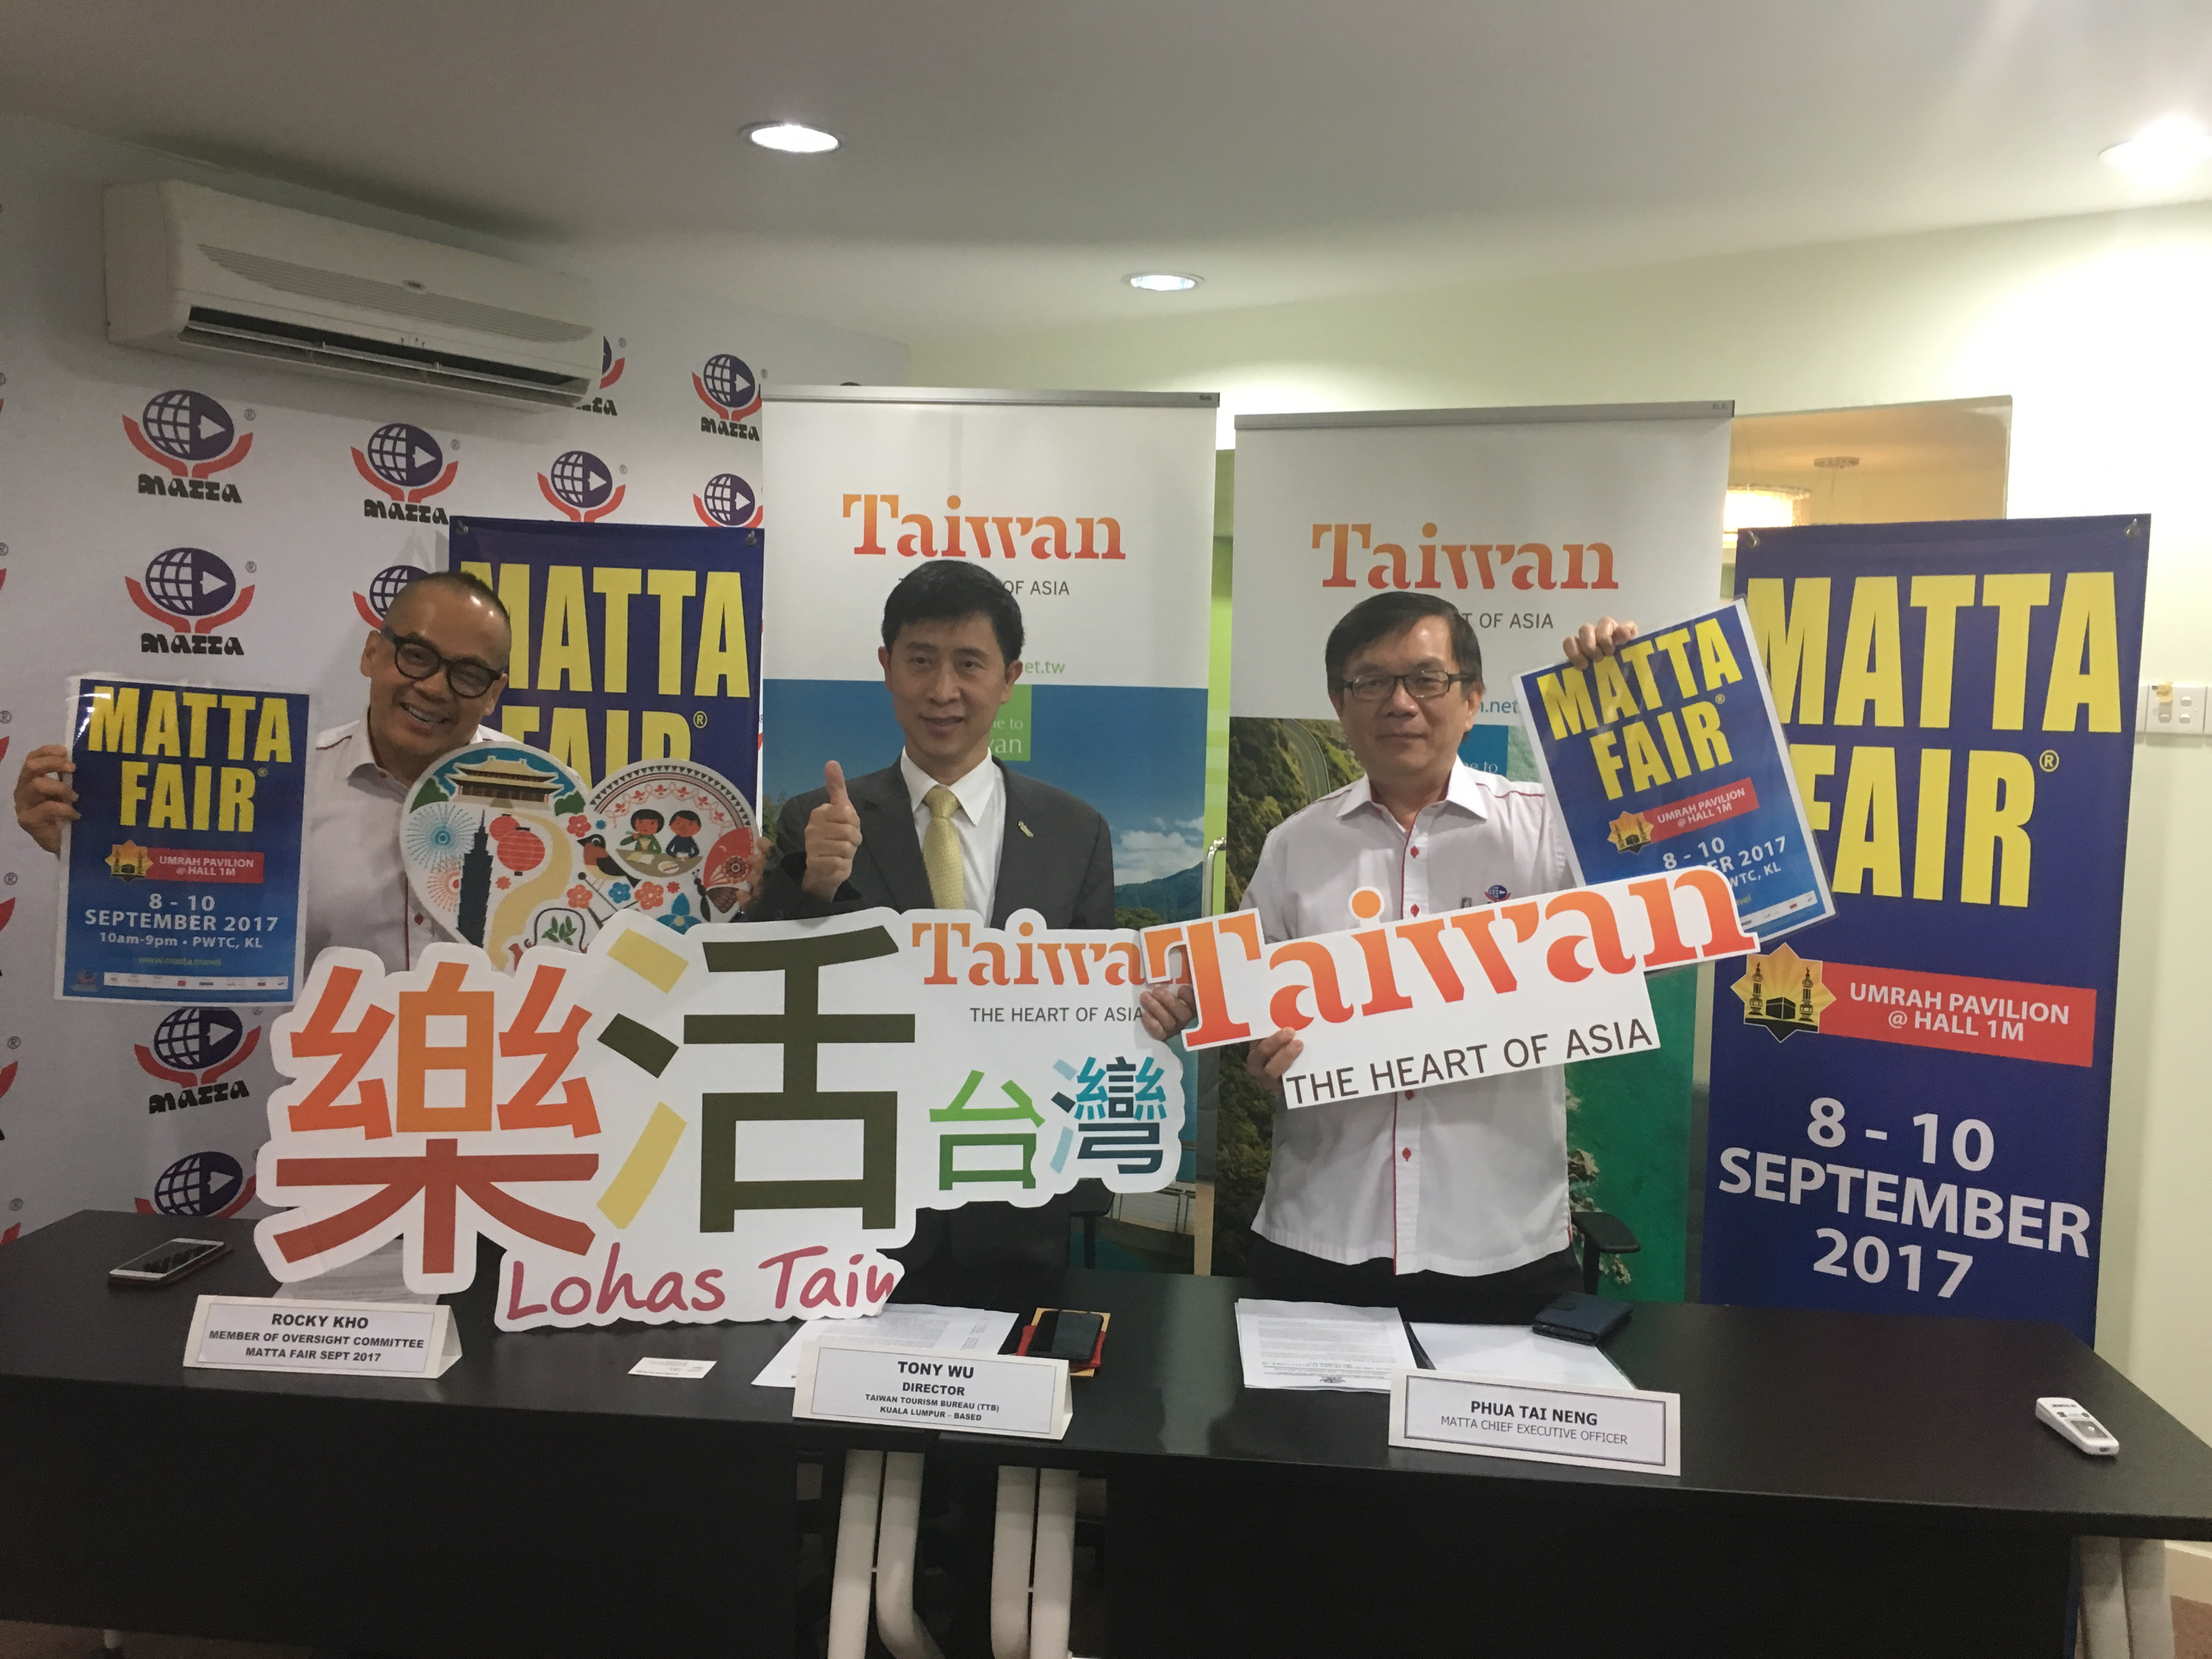 Taiwan set to capture hearts of Asian travellers in upcoming MATTA Fair Article cover photo